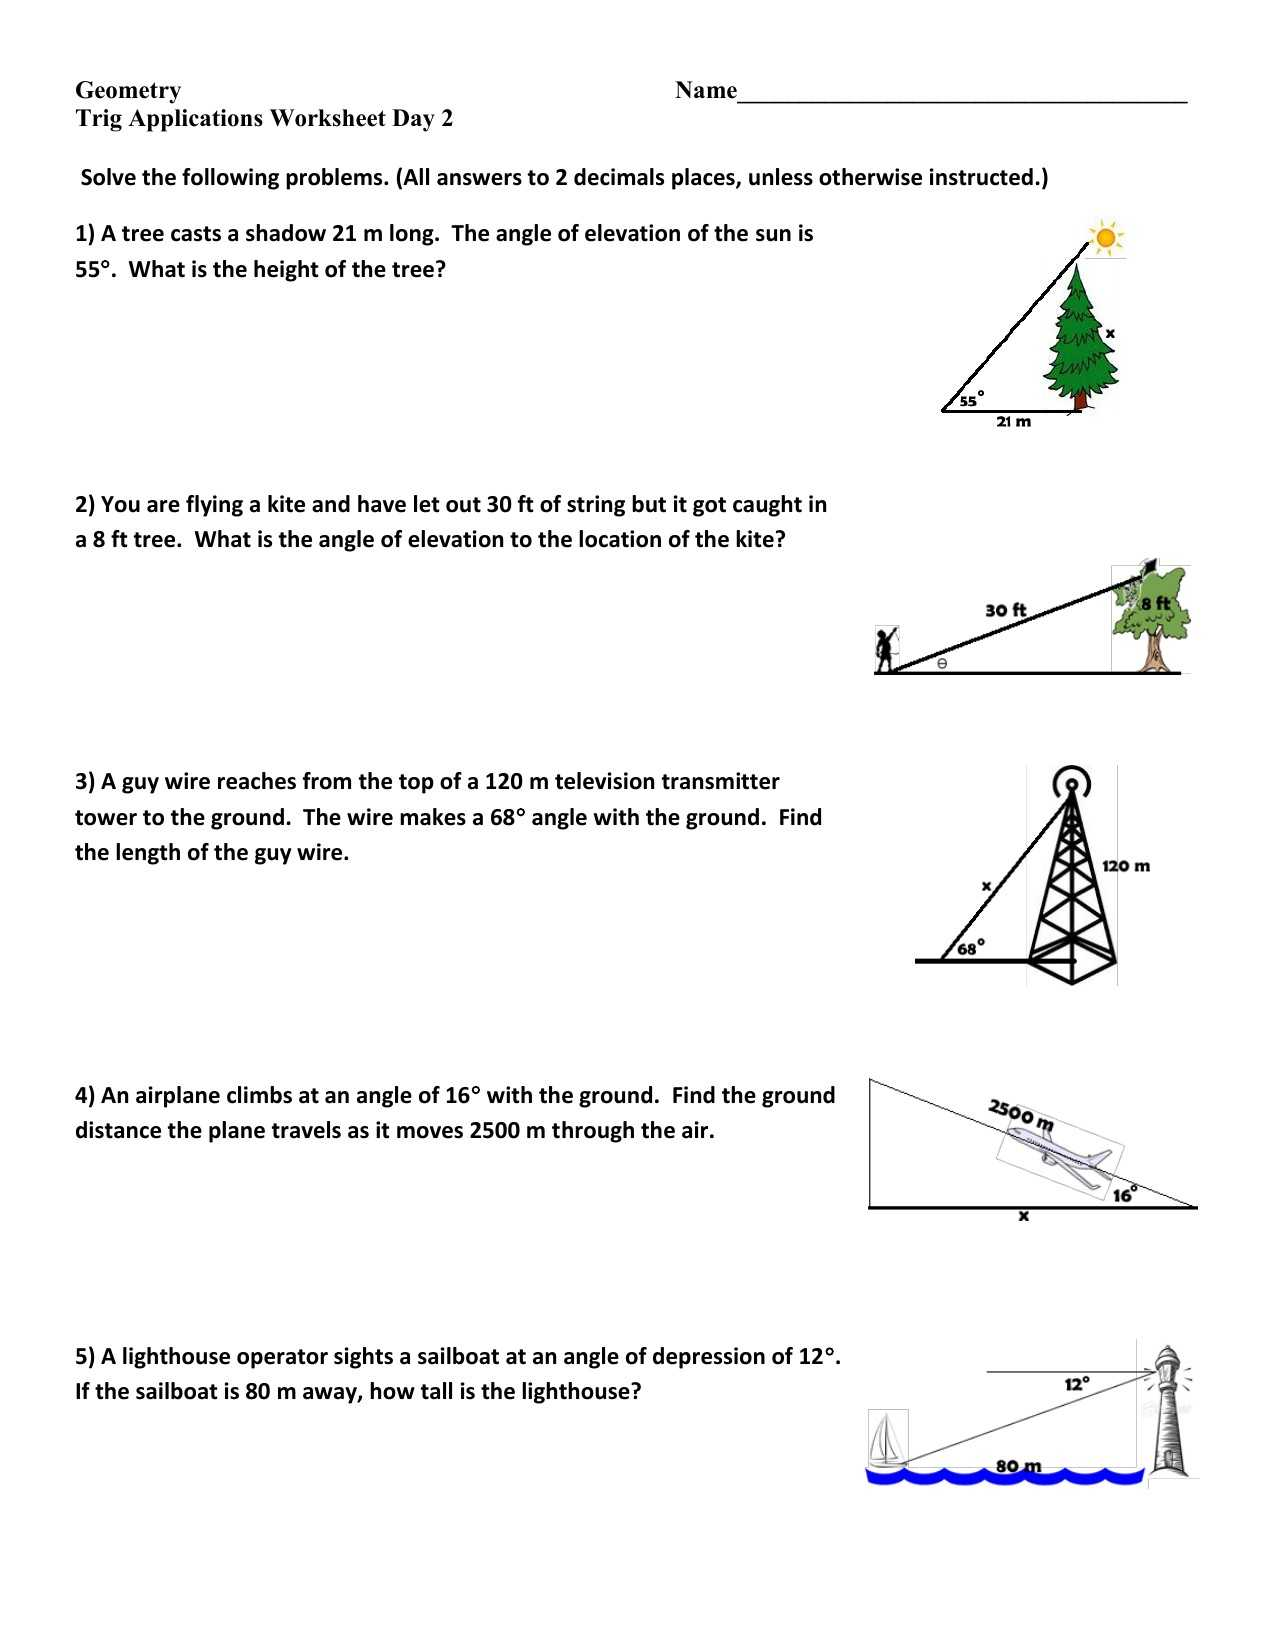 Geometry Worksheet Congruent Triangles Sss and Sas Answers together with Special Right Triangles Worksheet Answers Beautiful Worksheet